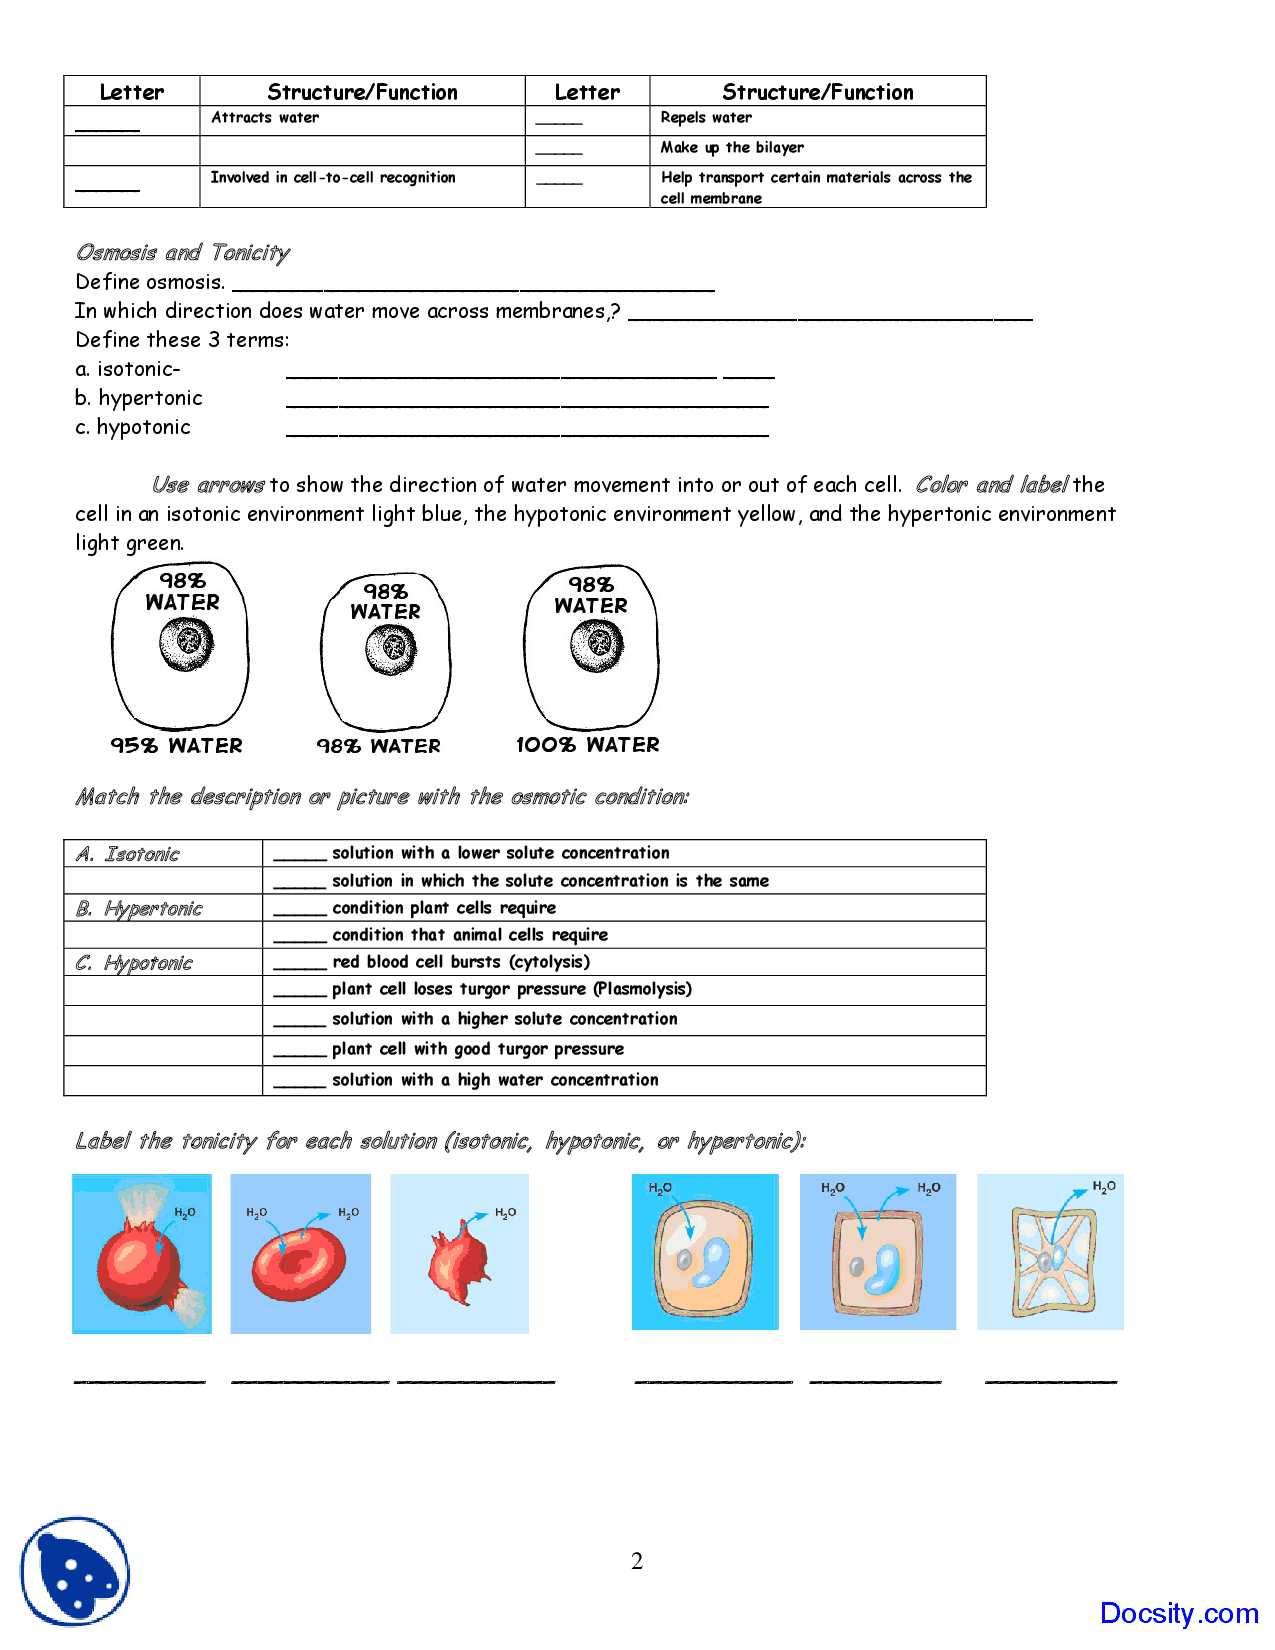 Diffusion and Osmosis Worksheet Answers as Well as Cell Transport Quiz Osmosis Diffusion Membrane Coloring Worksheet